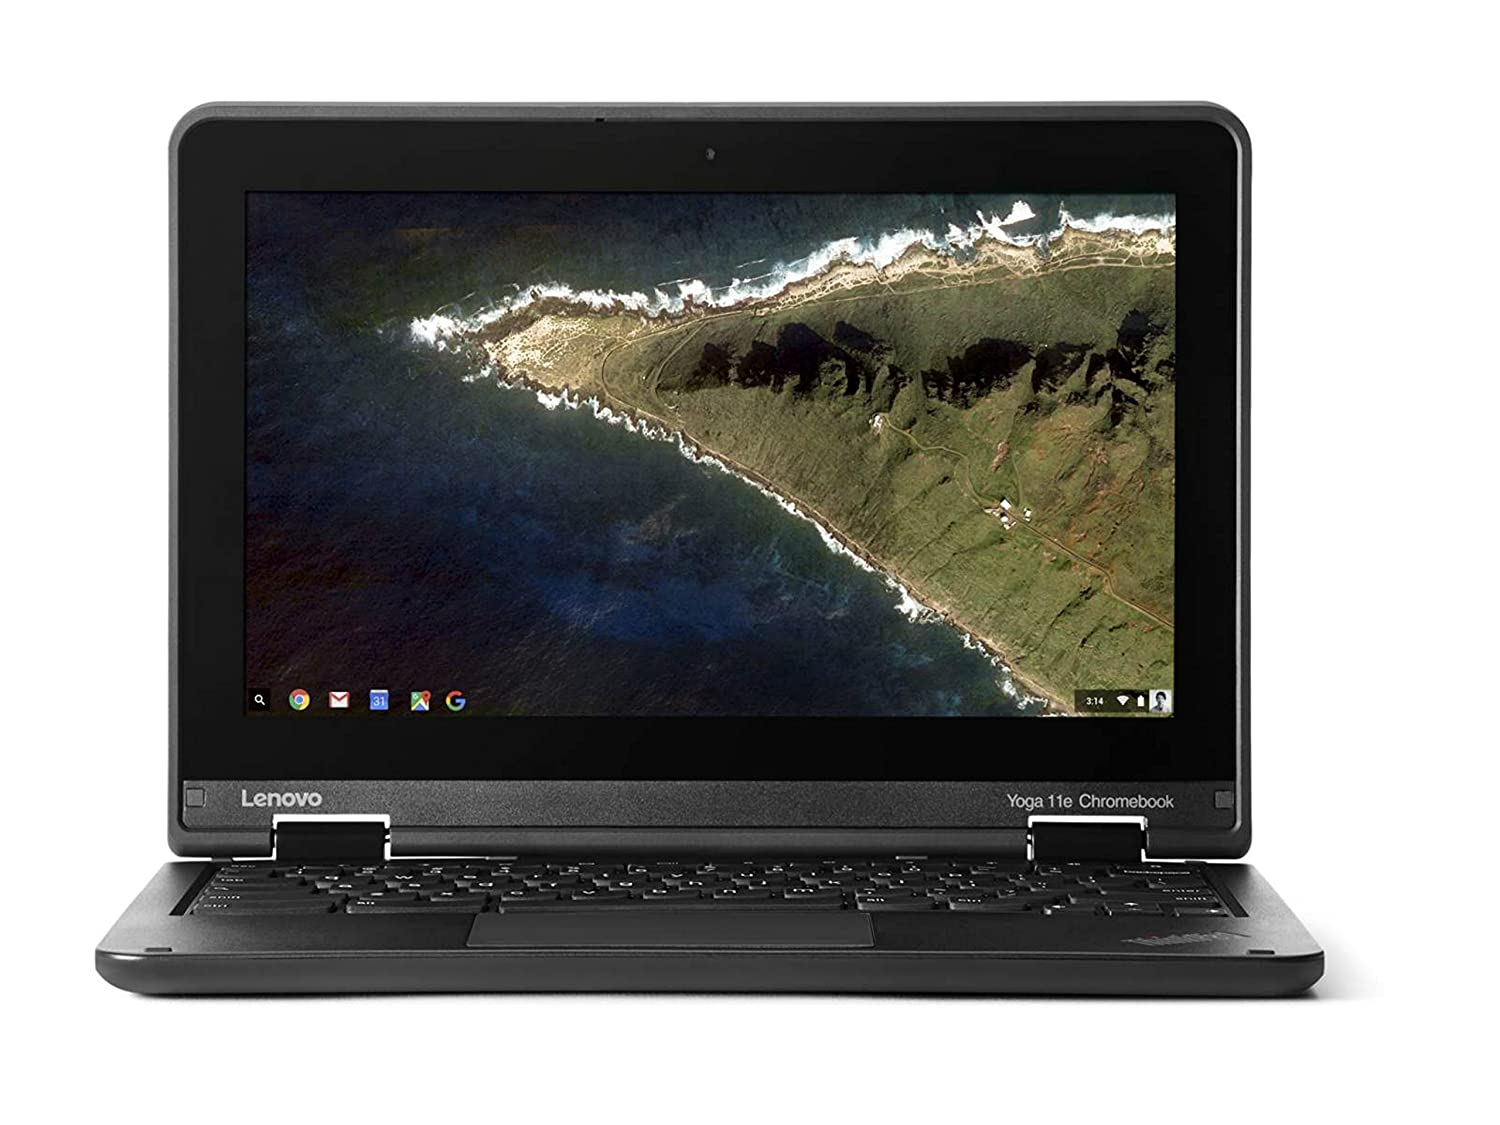 ... Convertible Touchscreen Chromebook, Intel Celeron N3150 1.6GHz, 16GB Flash Storage, 4GB RAM, Chrome OS, Black: Computers & Accessories